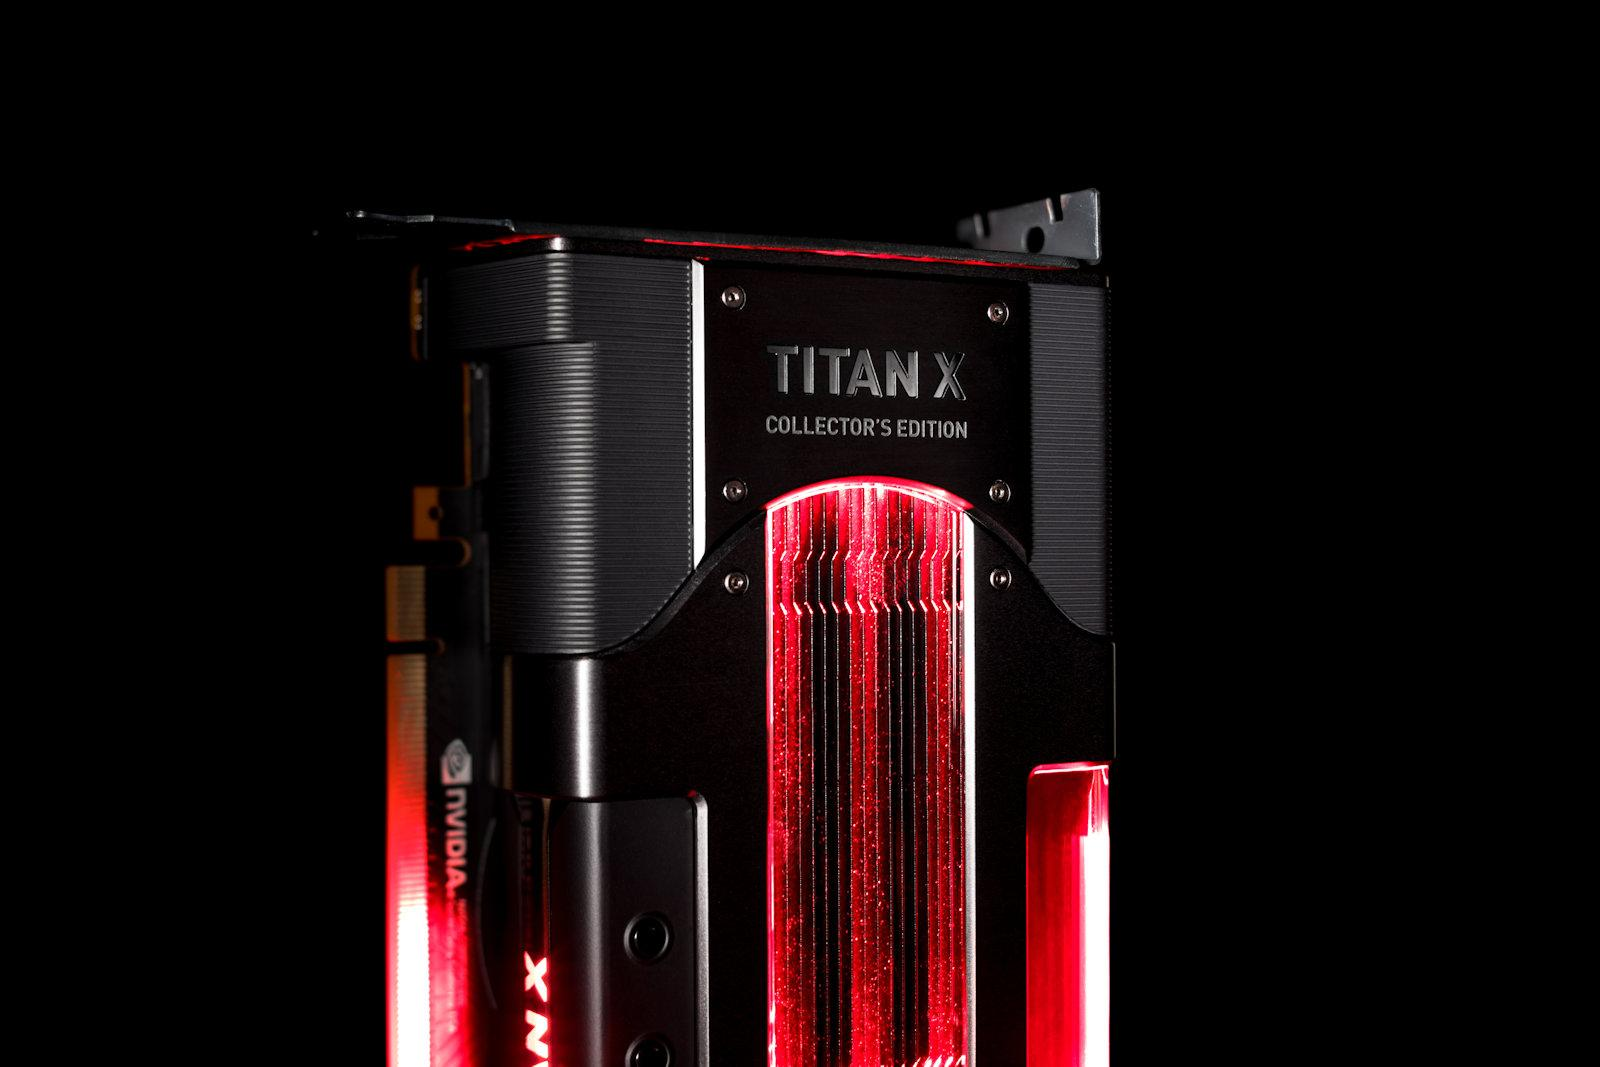 TITAN Xp的收藏版將於明天開始預購,售價與原裝TITAN Xp相同。 - XFastest - nvidia-geforce-titan-xp-star-wars-collectors-edition-galactic-empire-photo-002.jpg